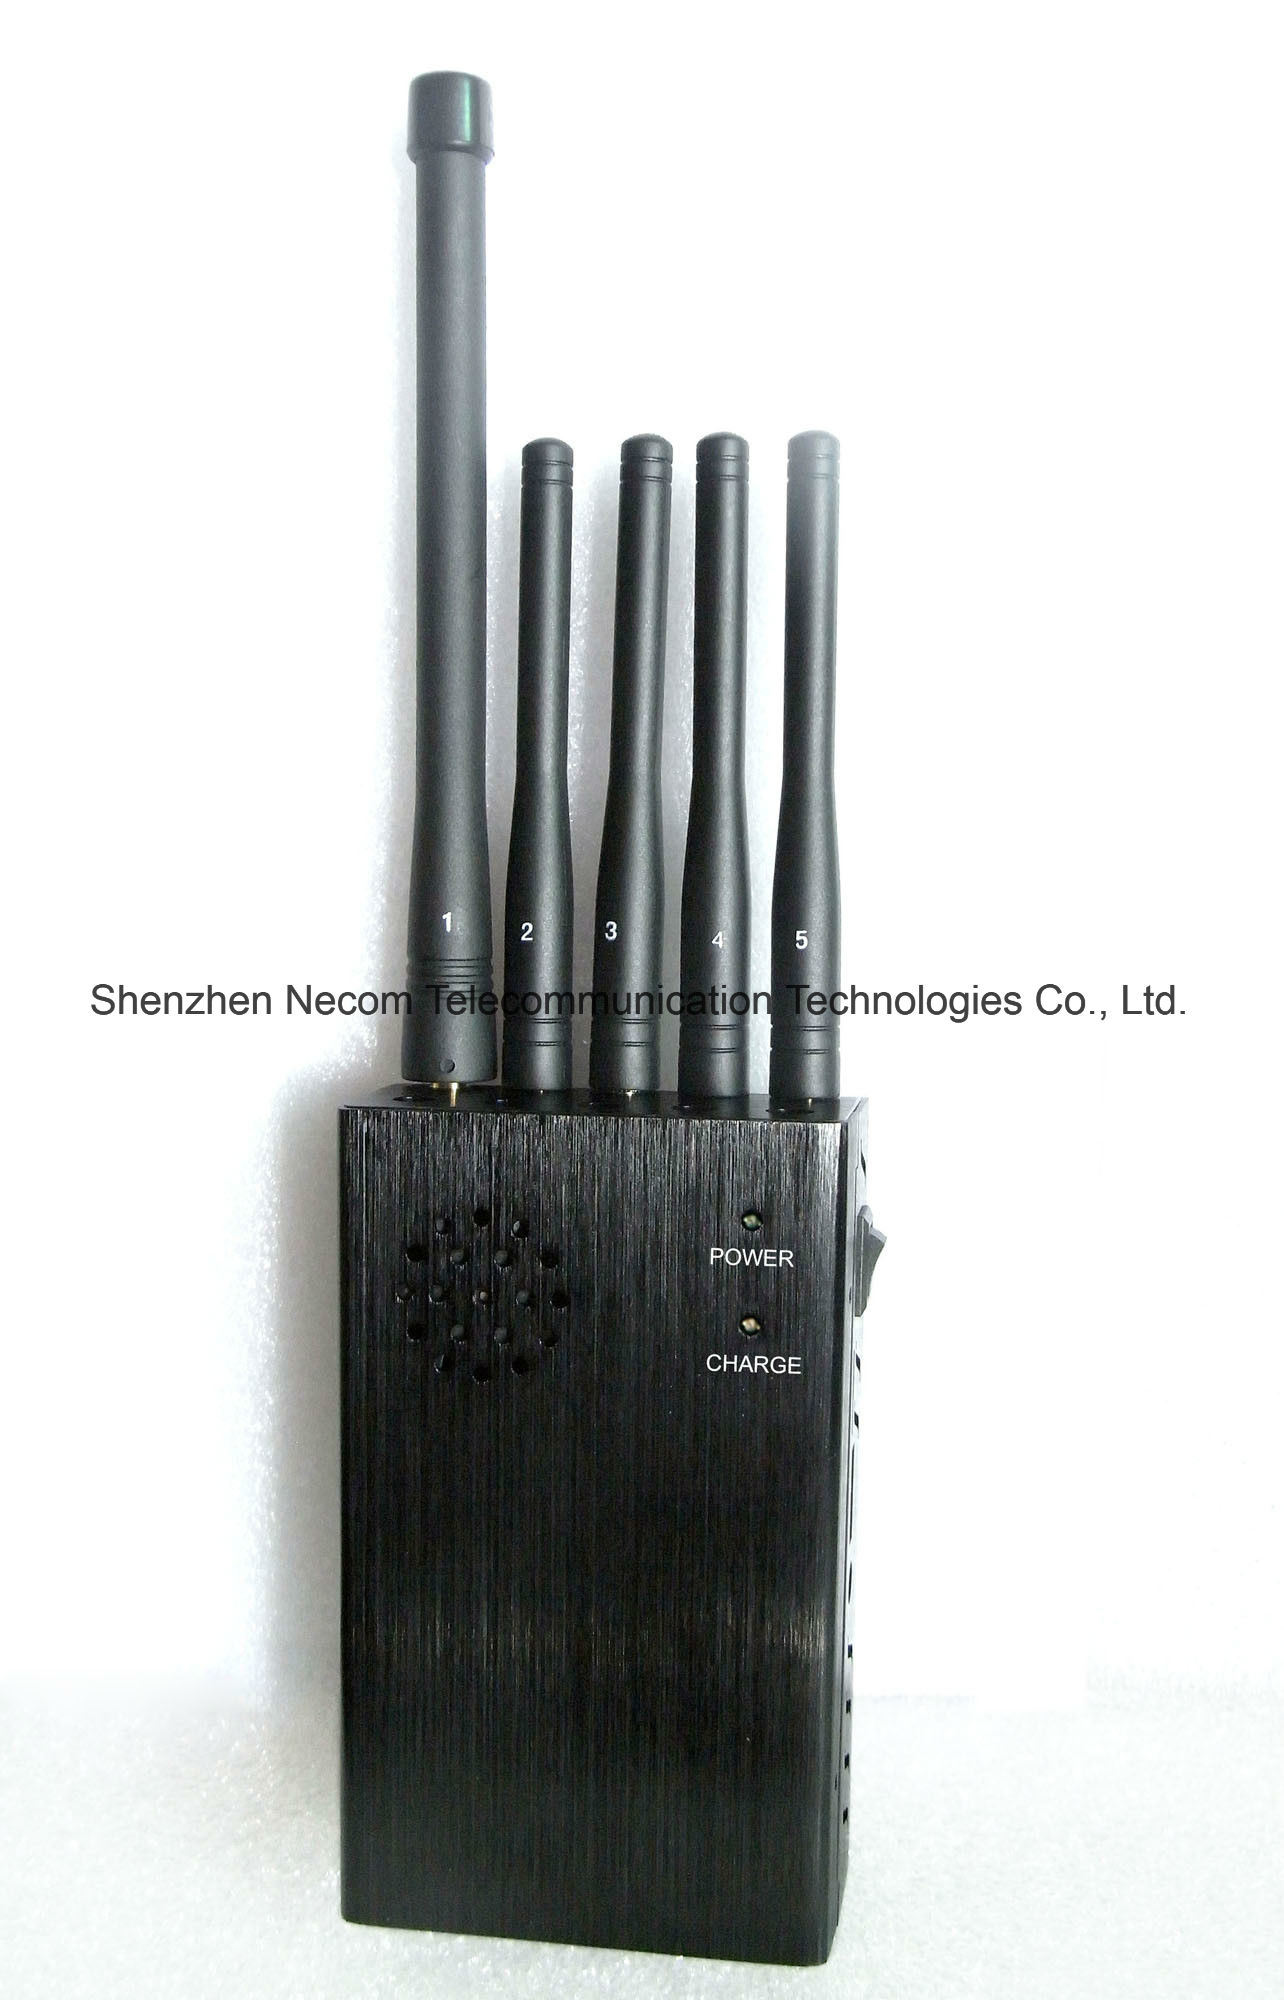 Portable signal jammer for gps login - China Portable GSM Cellular Signal Jammer / Blocker, Cell Phone 5 Bands Jammer/Blocker for 2g+3G+WiFi+Lojack - China 5 Band Signal Blockers, Five Antennas Jammers